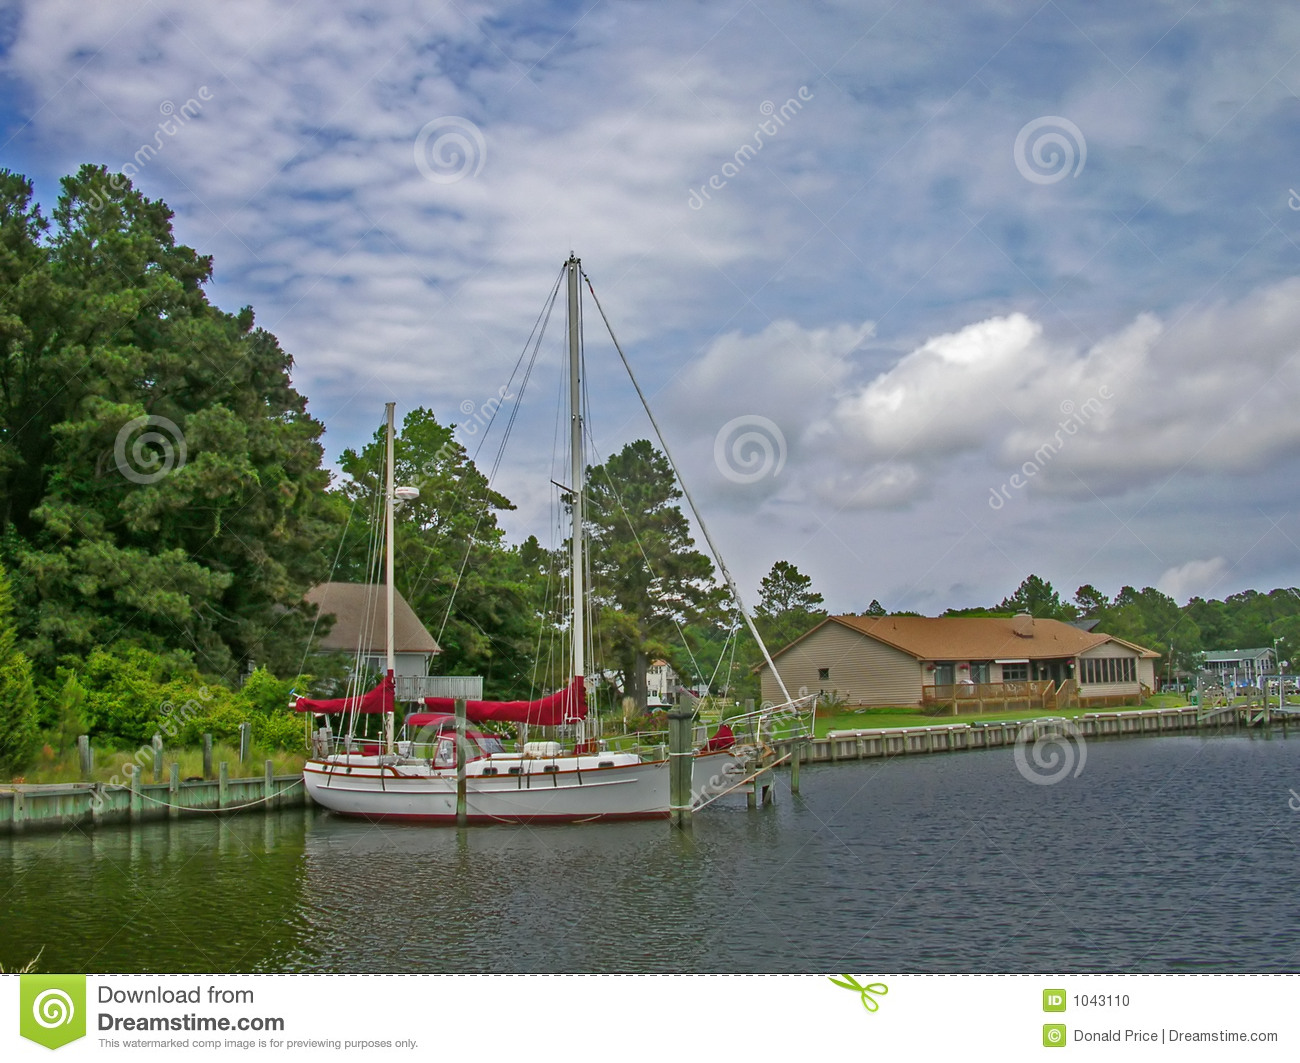 Download Docked Sailboat stock photo. Image of weather, harbour - 1043110